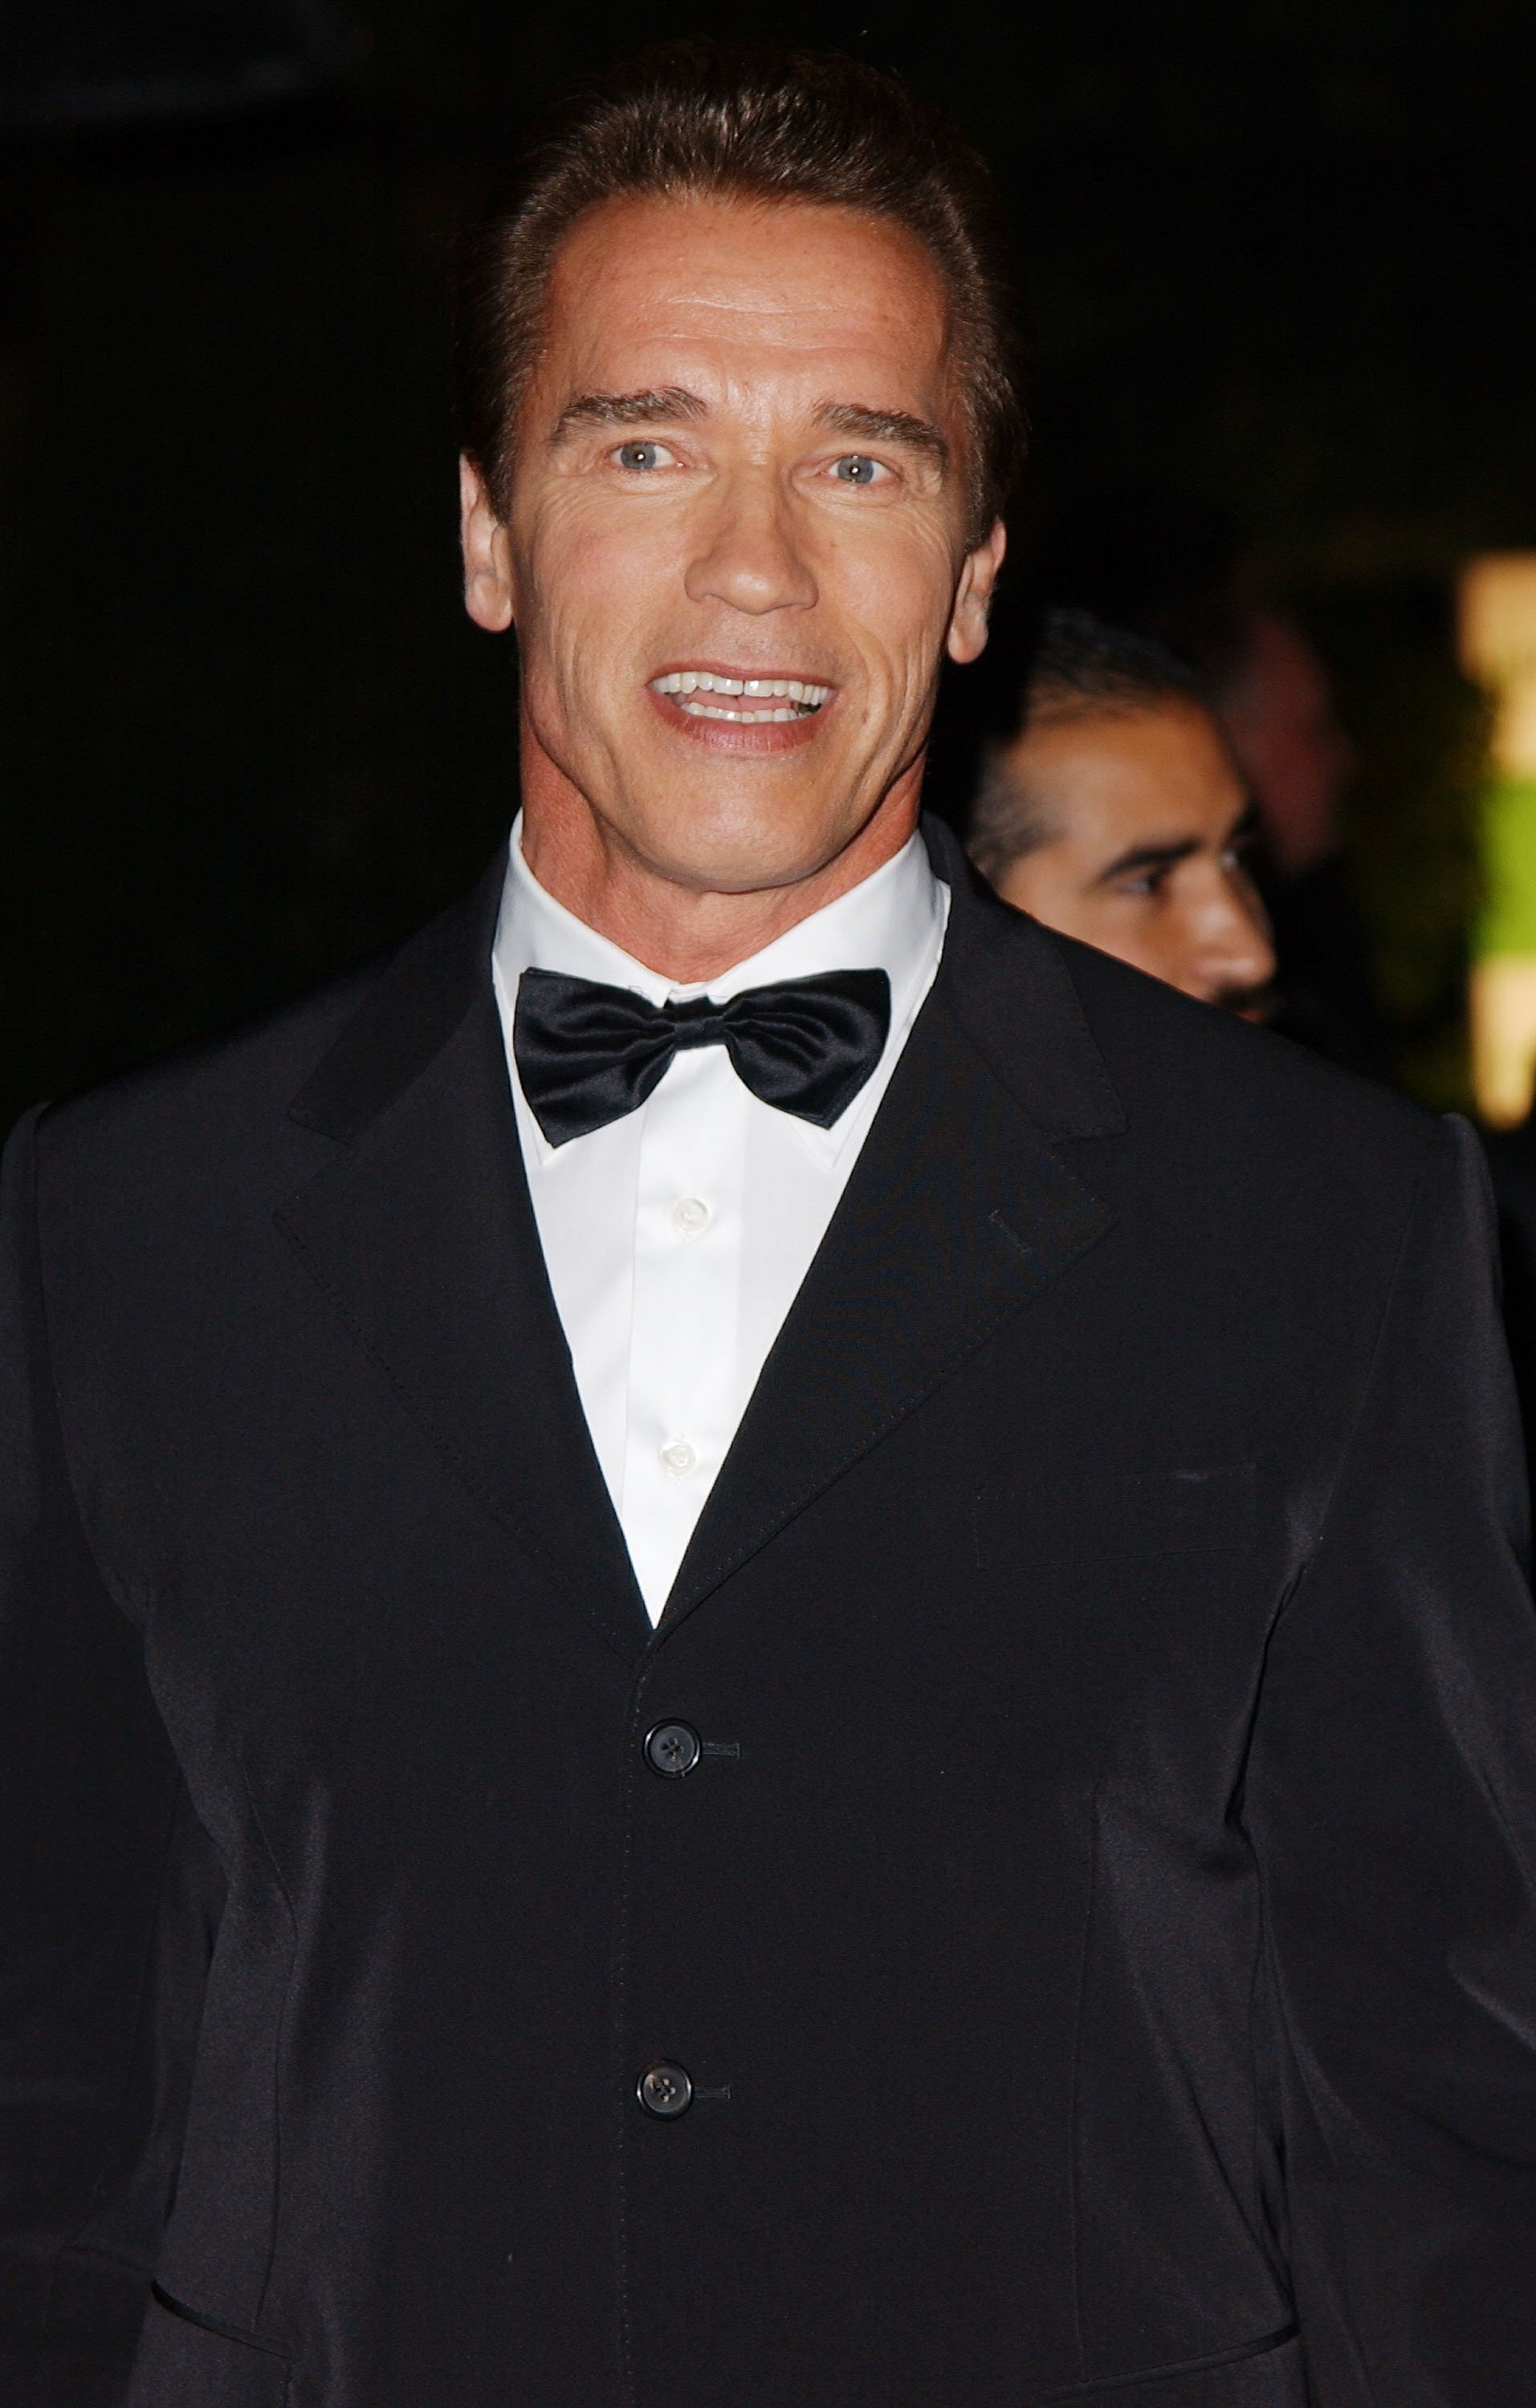 Arnold Schwarzenegger attends a Mentor Foundation event in Hollywood, California on November 3, 2002 | Photo: Getty Images